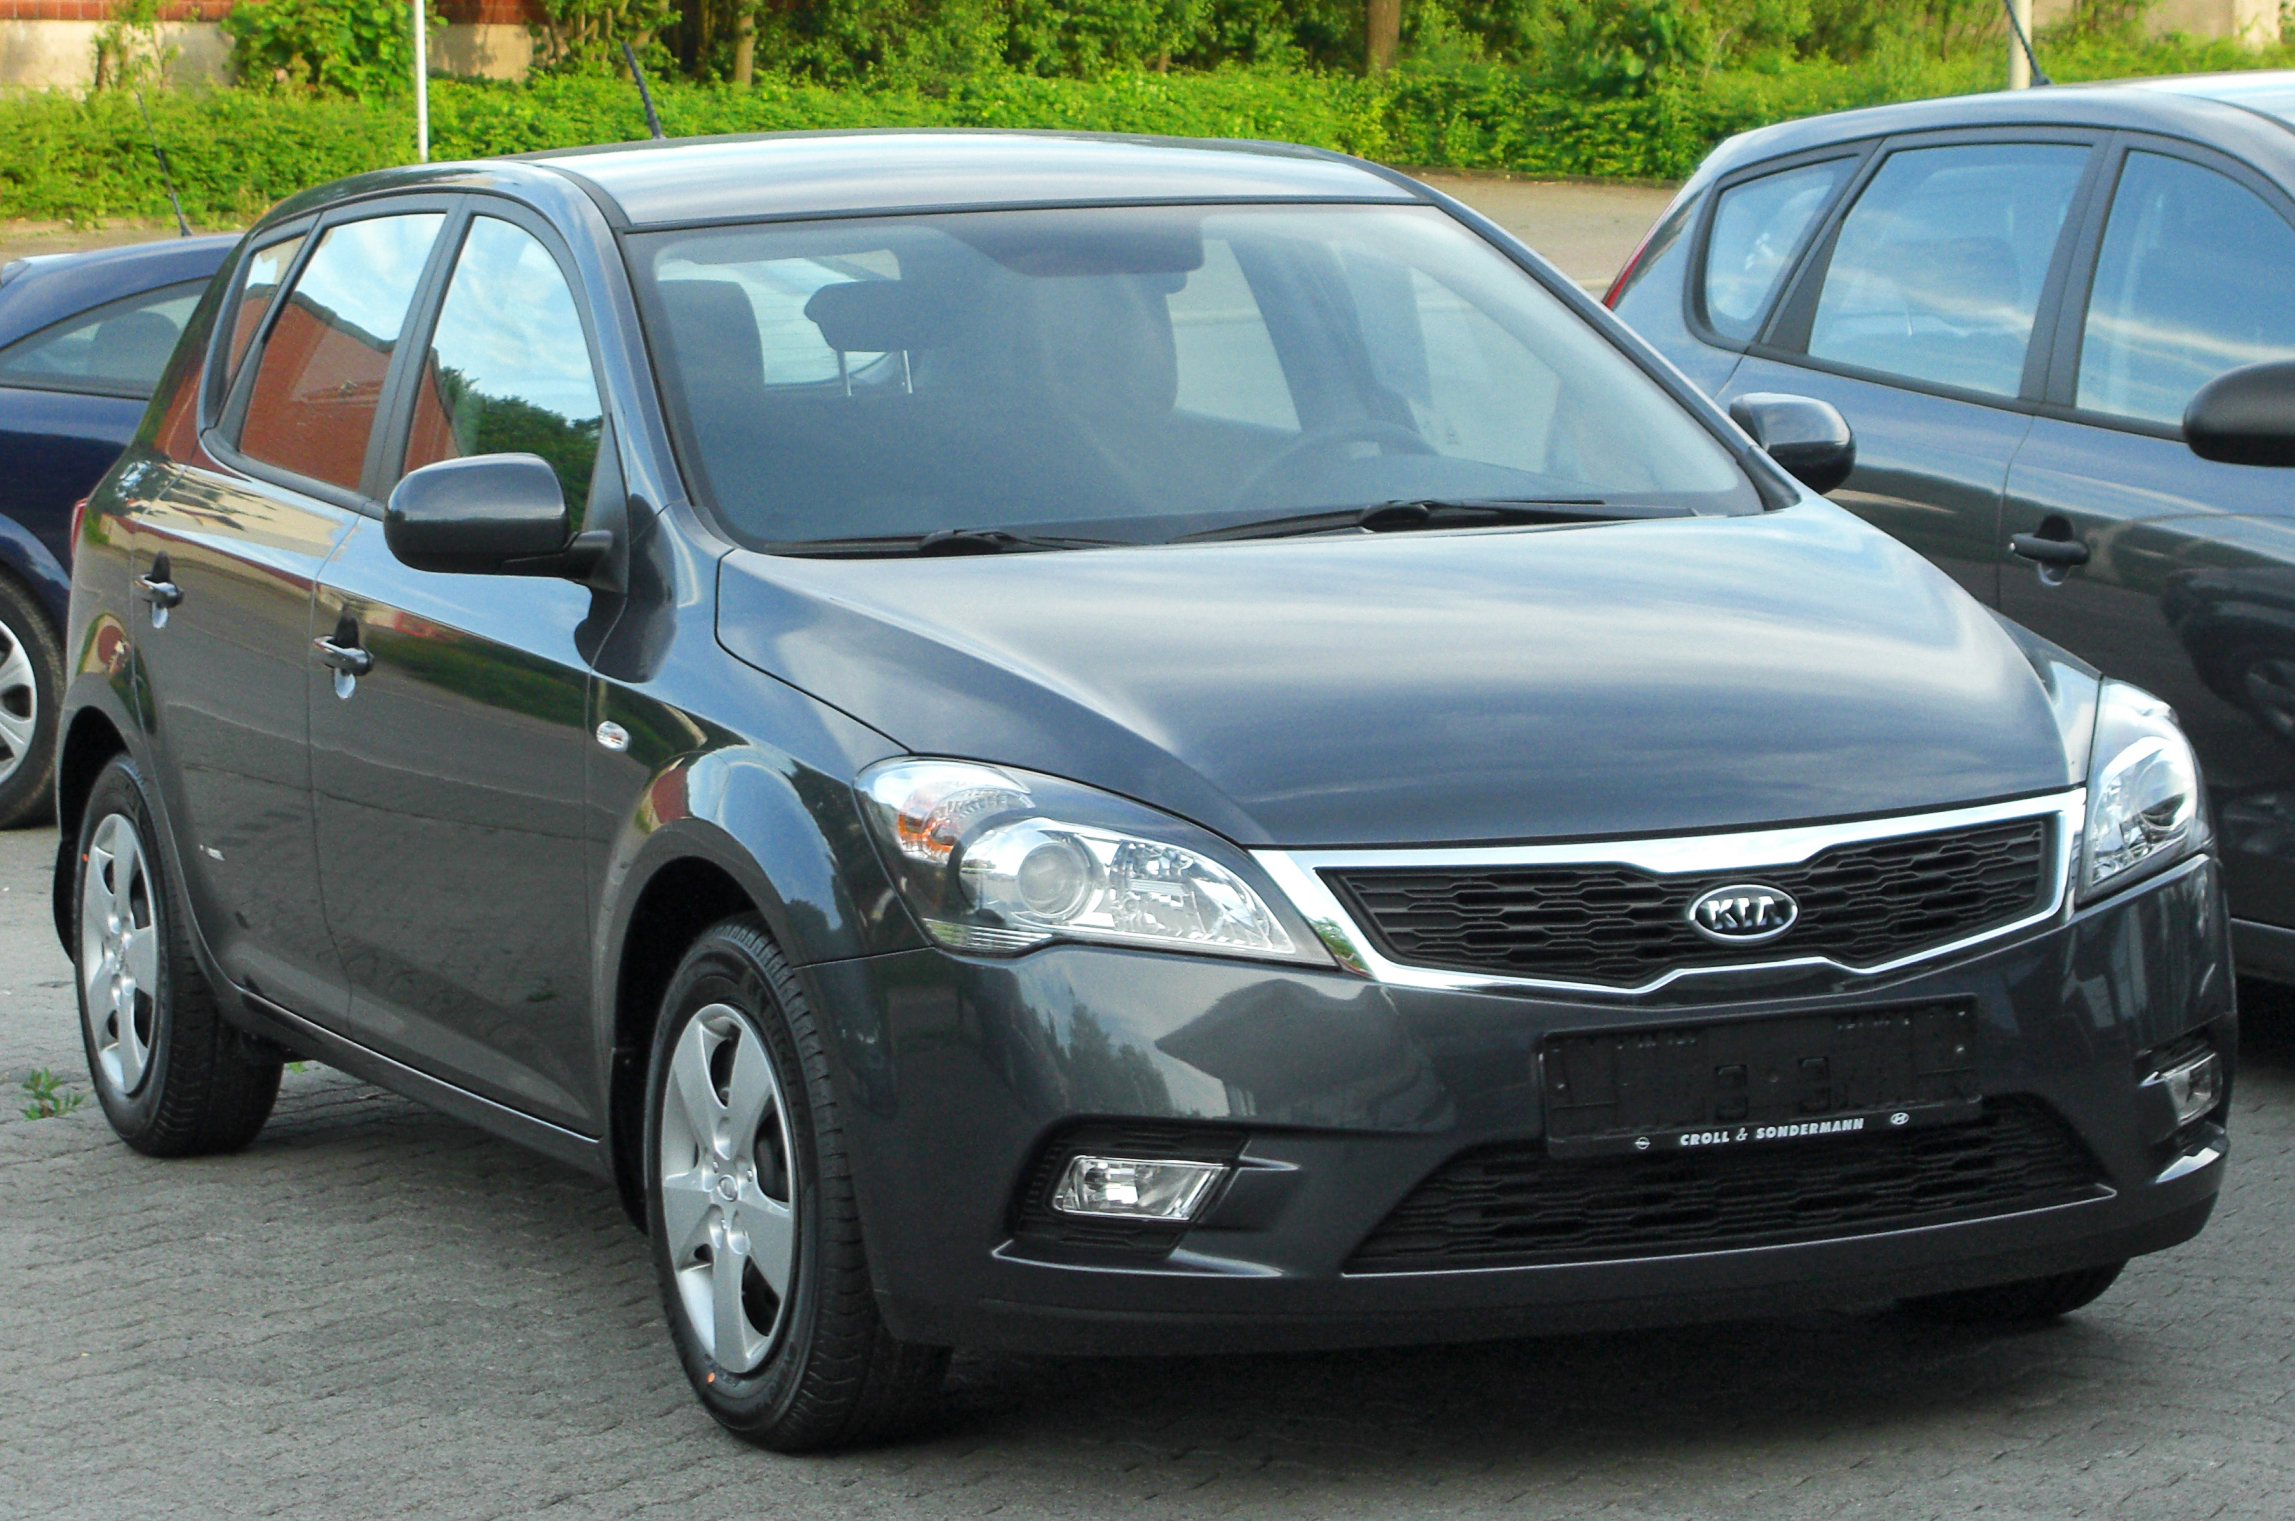 2009 kia ceed pictures information and specs auto. Black Bedroom Furniture Sets. Home Design Ideas